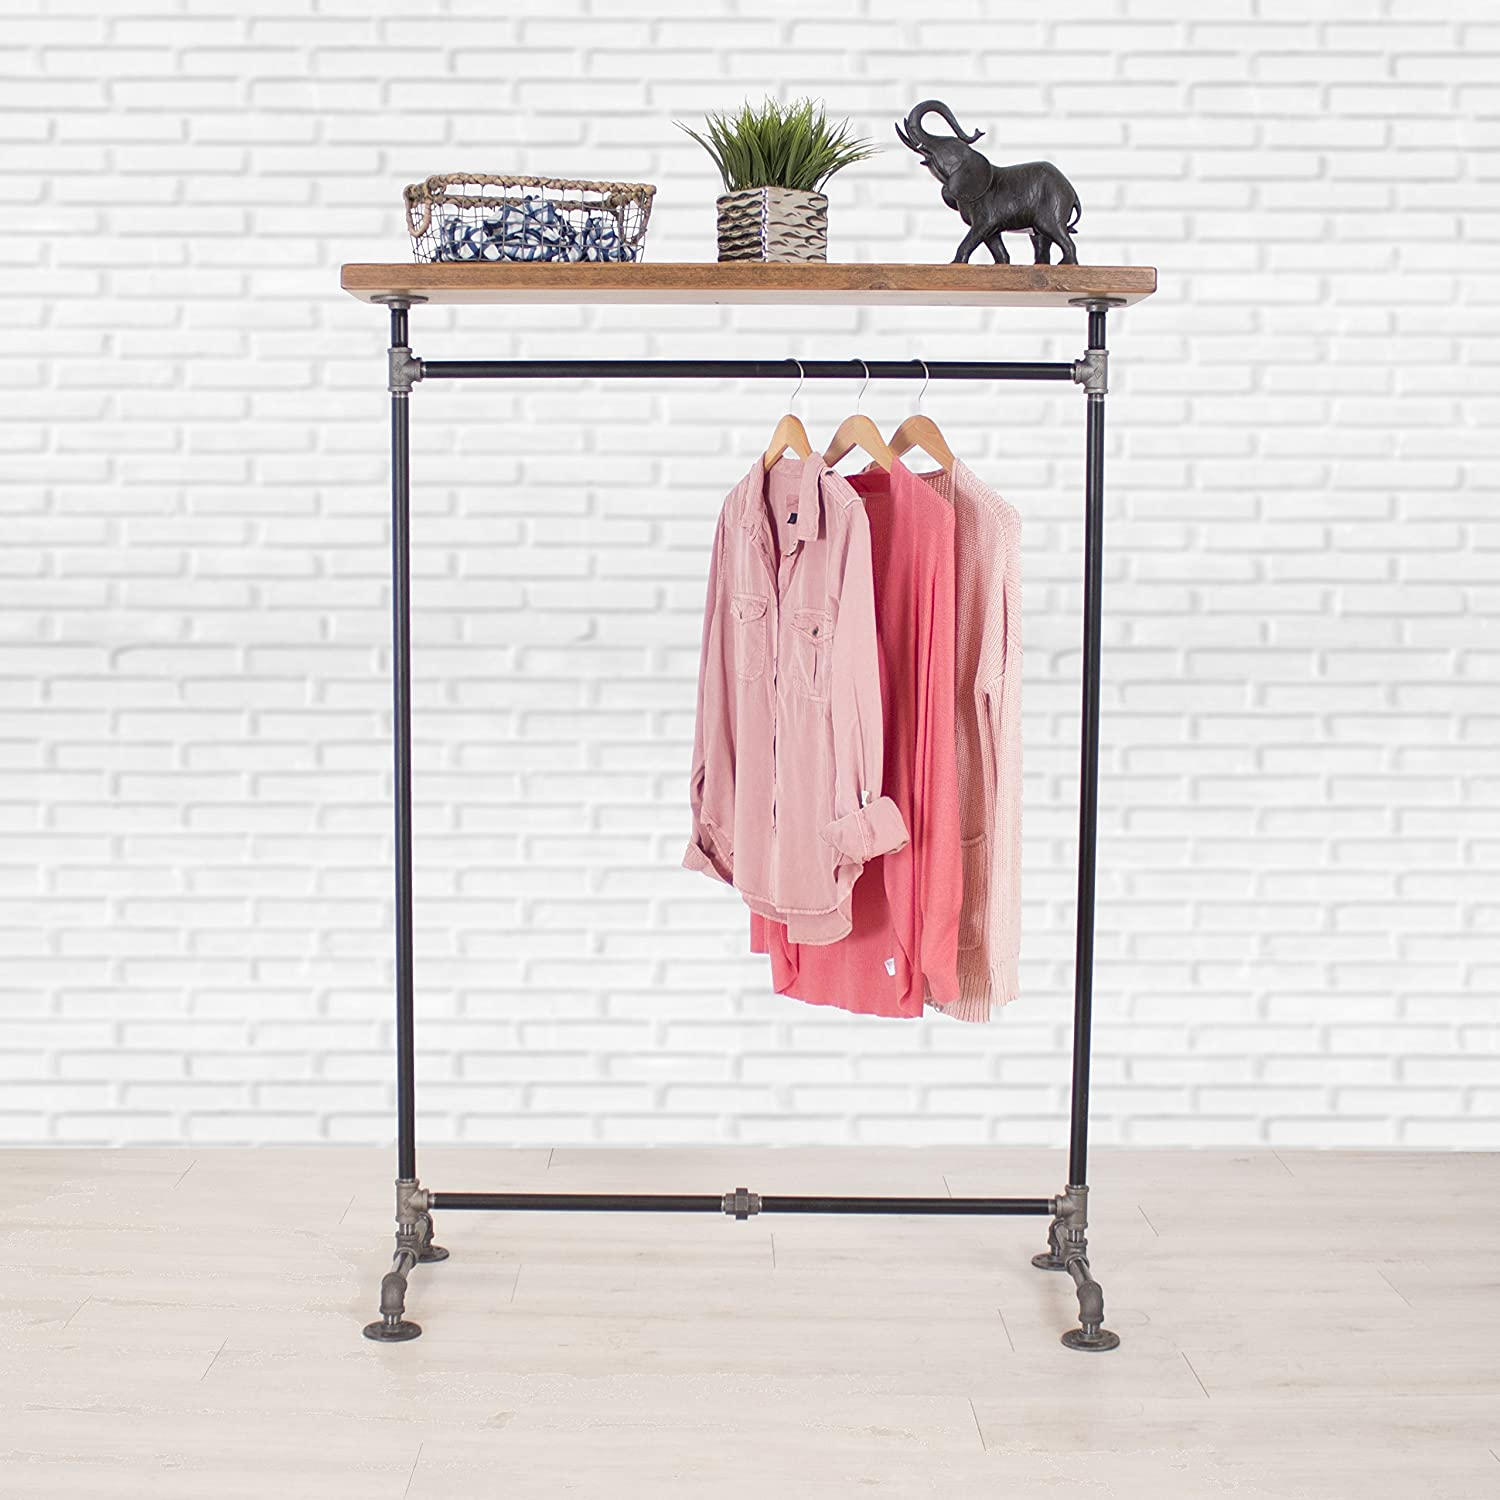 Industrial Pipe Clothing Rack with Cedar Wood Top Shelving by William Robert's Vintage